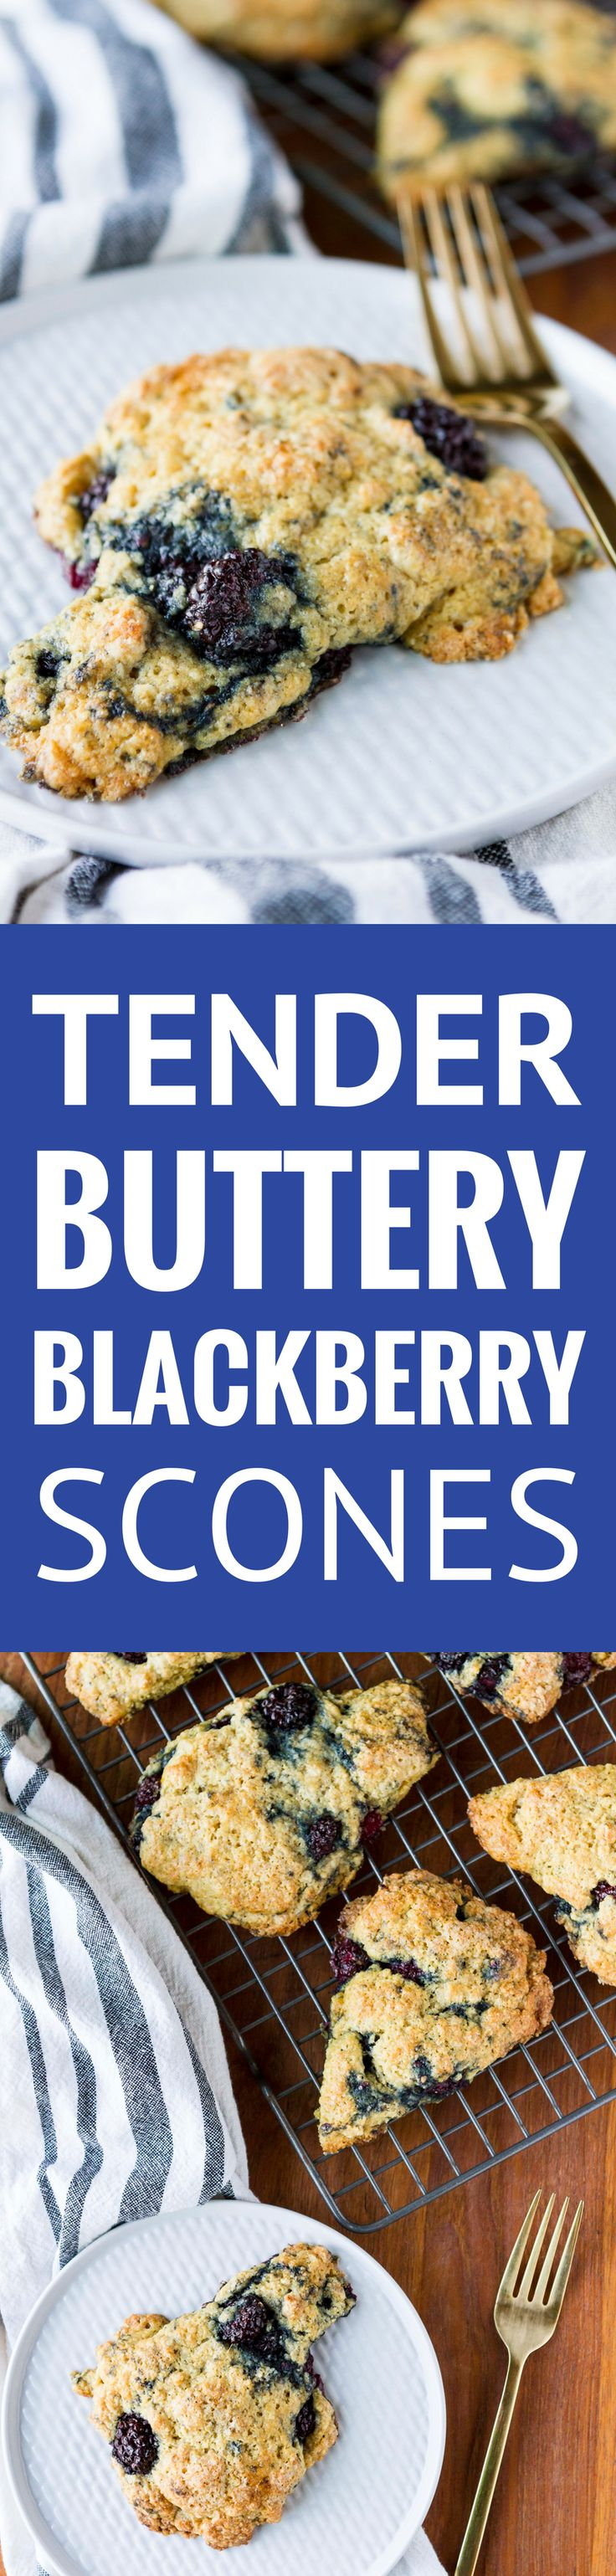 Tender & Buttery Blackberry Scones (ad) -- These tender, buttery blackberry scones are so simple to make, even my kids can bake them all by themselves... Substitute your favorite fresh or frozen berries to customize! | blackberry scones recipe | easy blackberry scones | best blackberry scones | simple blackberry scones | buttermilk blackberry scones | find the recipe on unsophisticook.com #blackberry #scones #sconerecipe #cookingwithkids #CountOnCor #OvenTimeTips